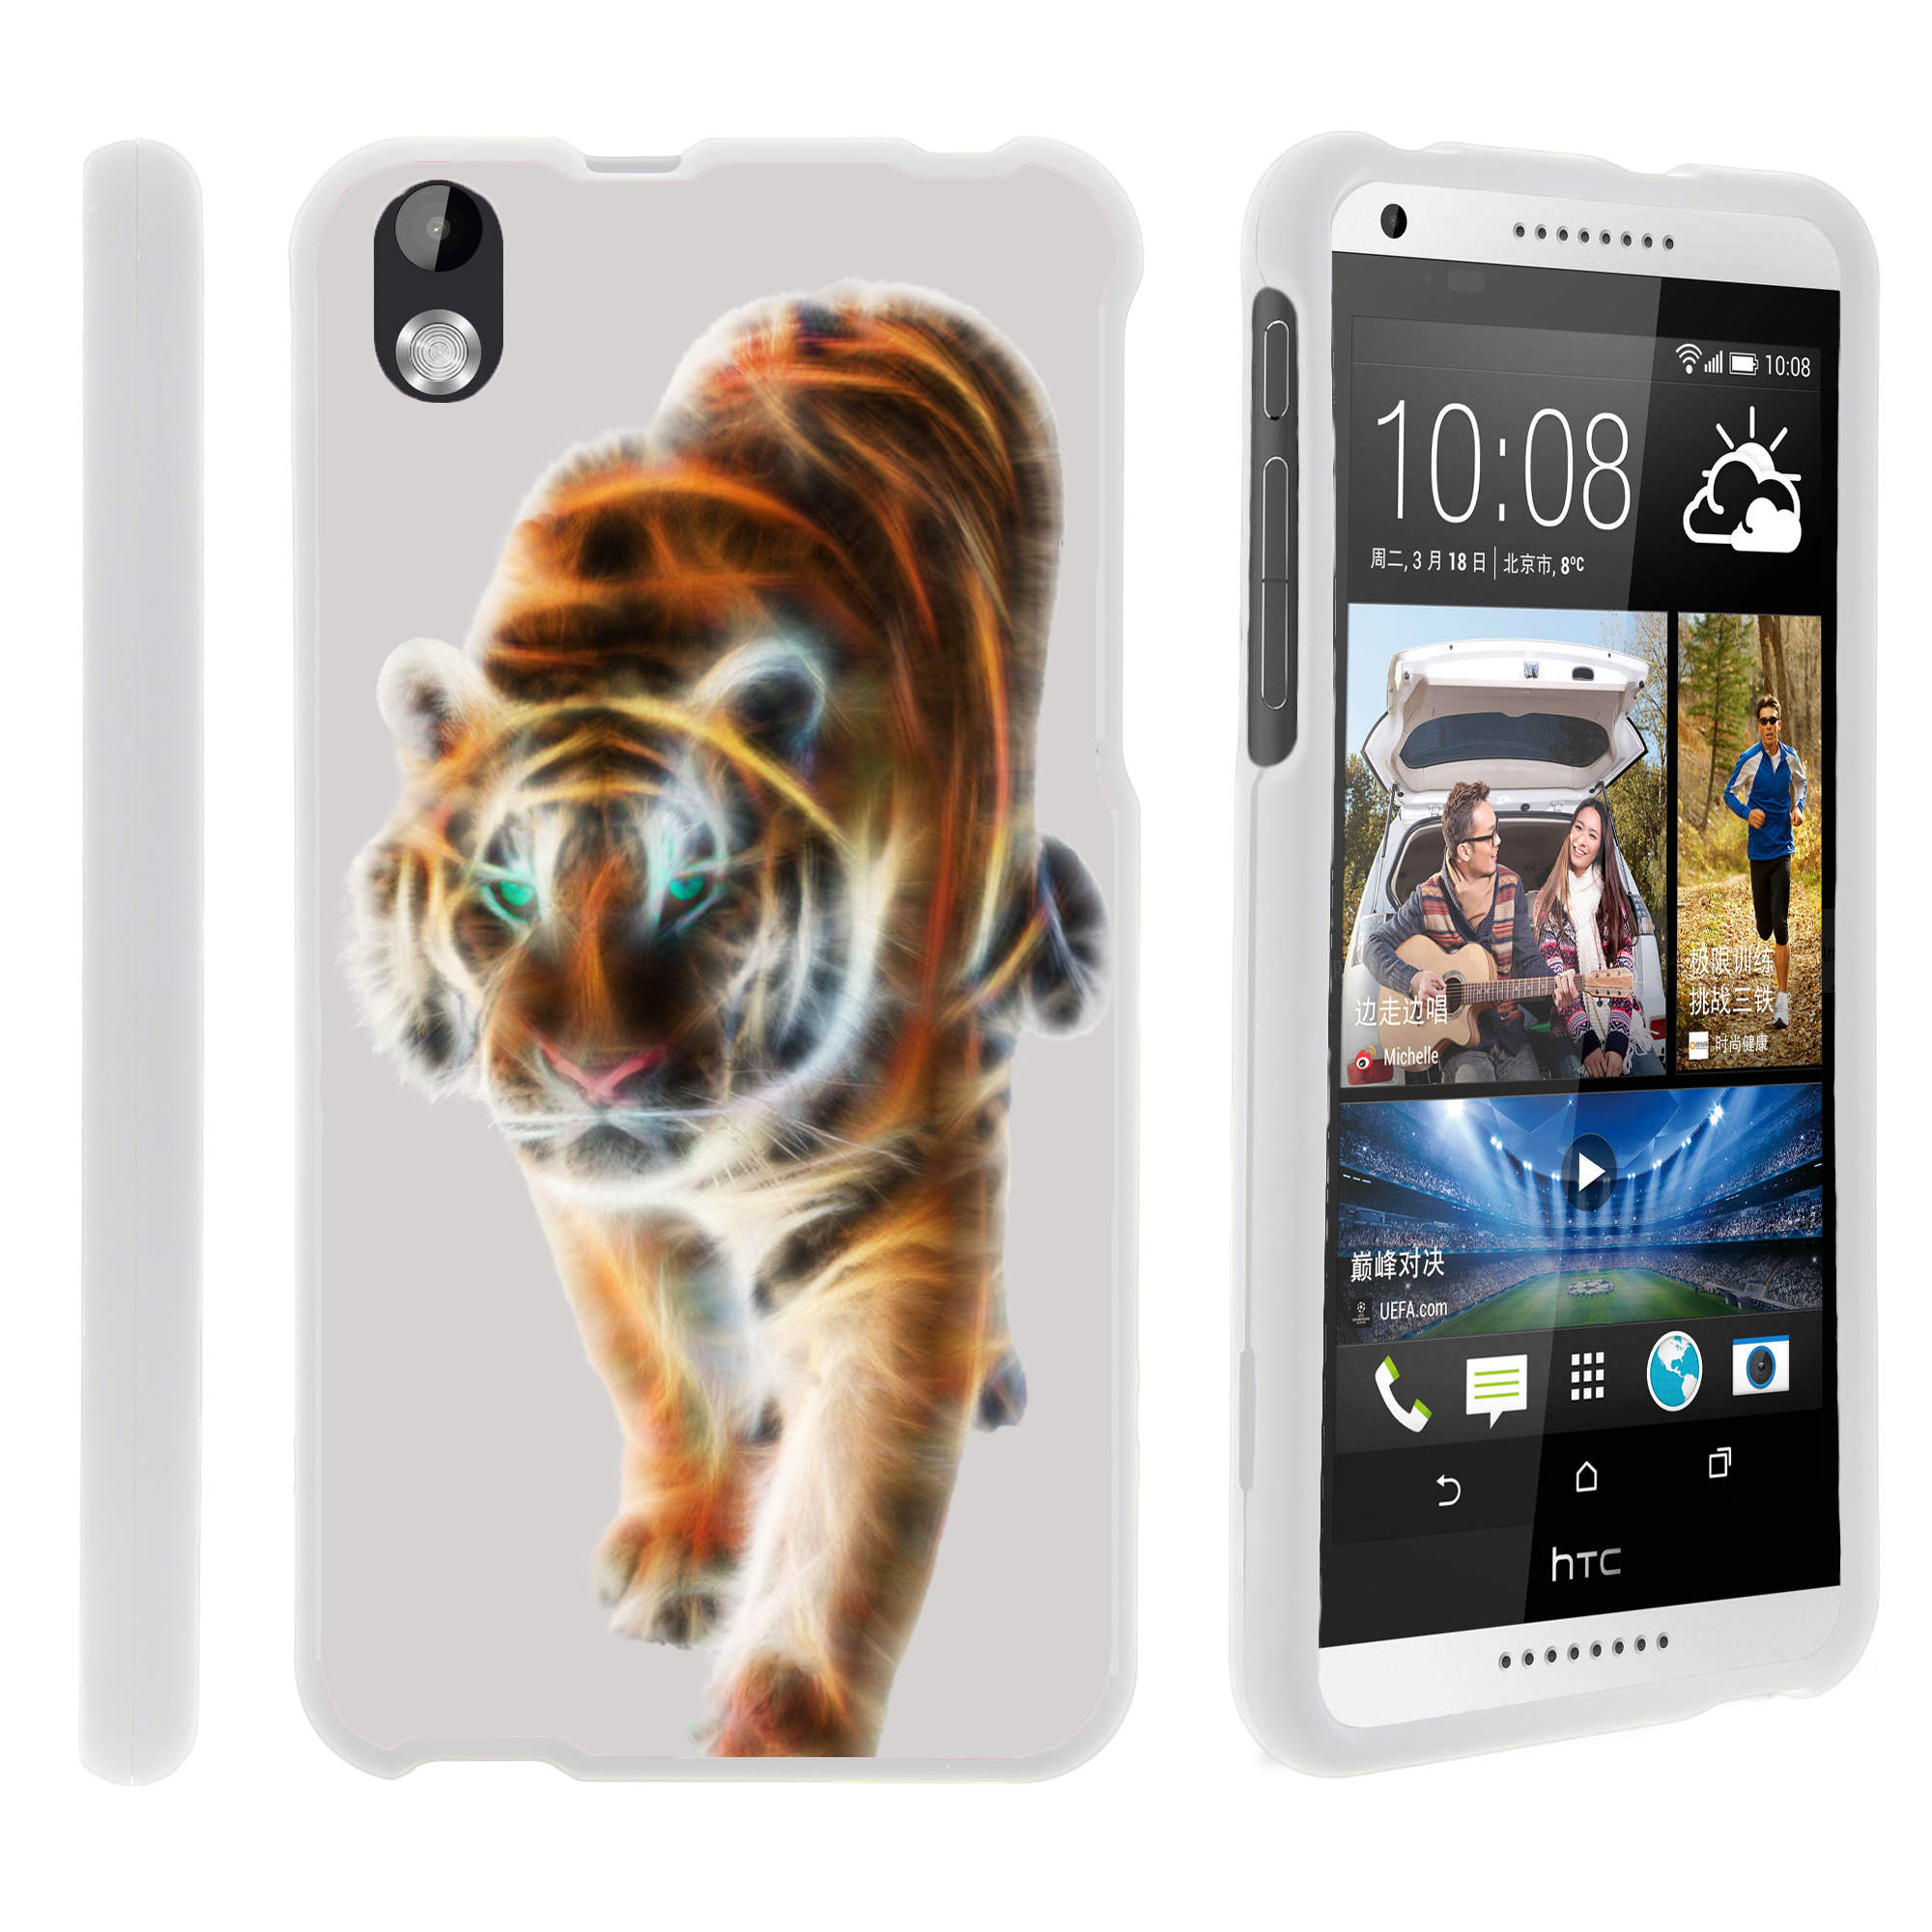 HTC Desire 816, [SNAP SHELL][White] 2 Piece Snap On Rubberized Hard White Plastic Cell Phone Case with Exclusive Art -  Blazing Tiger